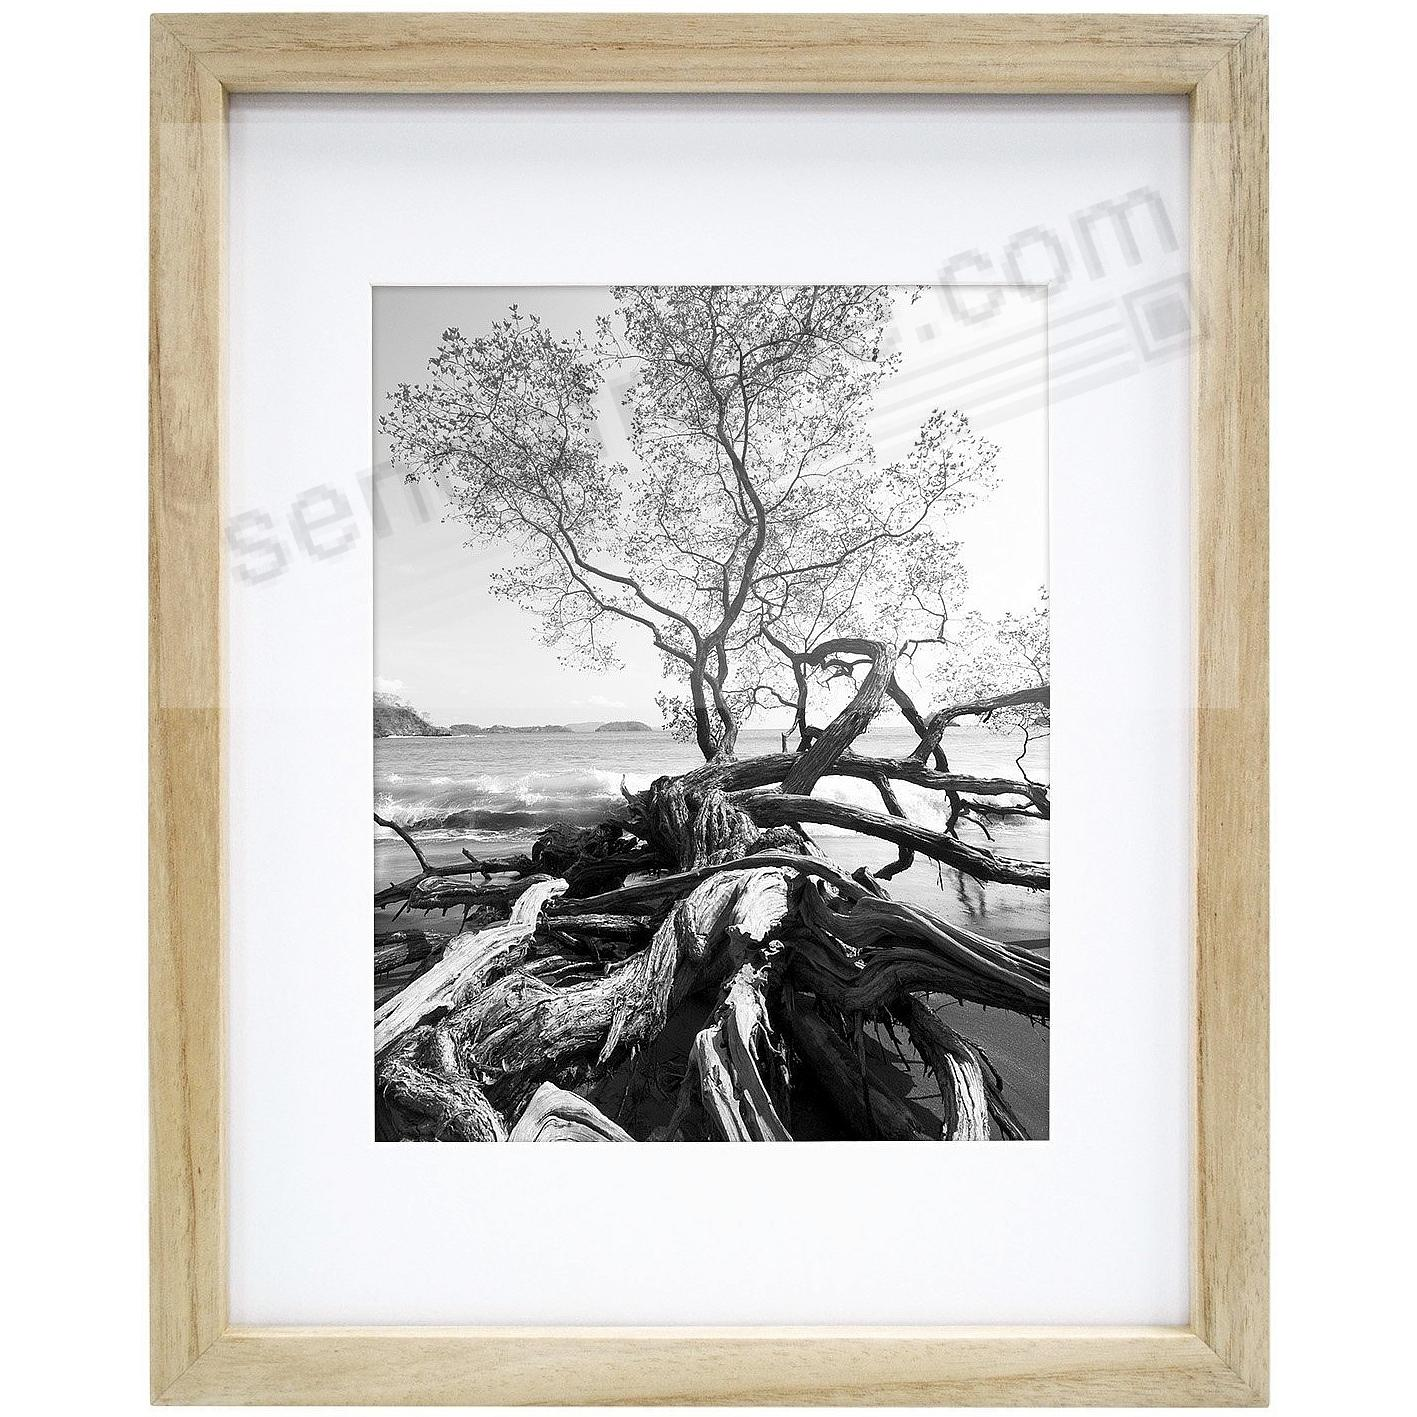 Art Shadow-Box ¾in depth Natural Wood 11x14/8x10 frame by MCS ...